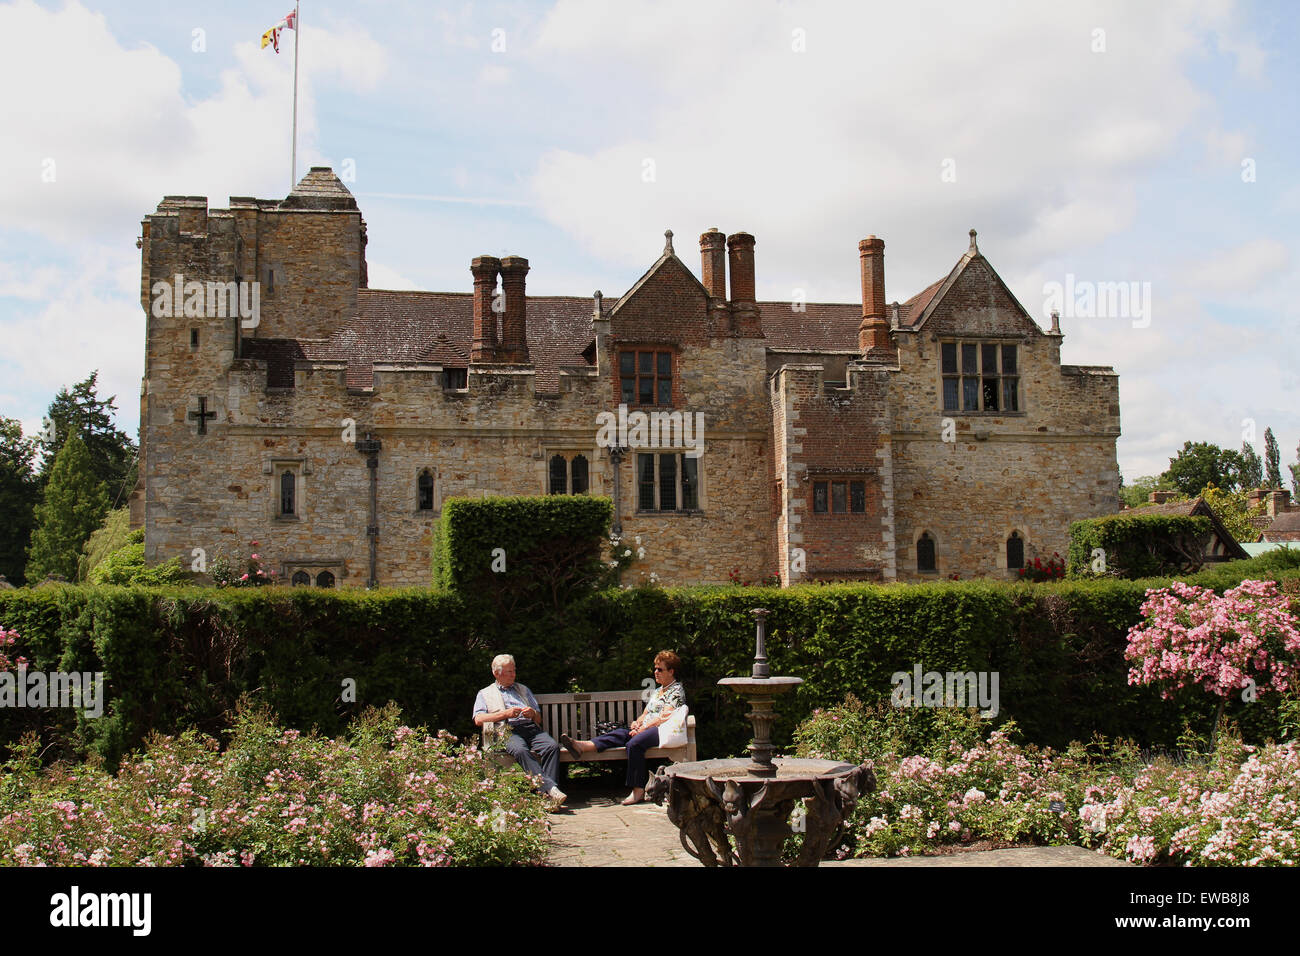 elderly couple enjoy the gardens at Hever Castle in Kent UK - Stock Image